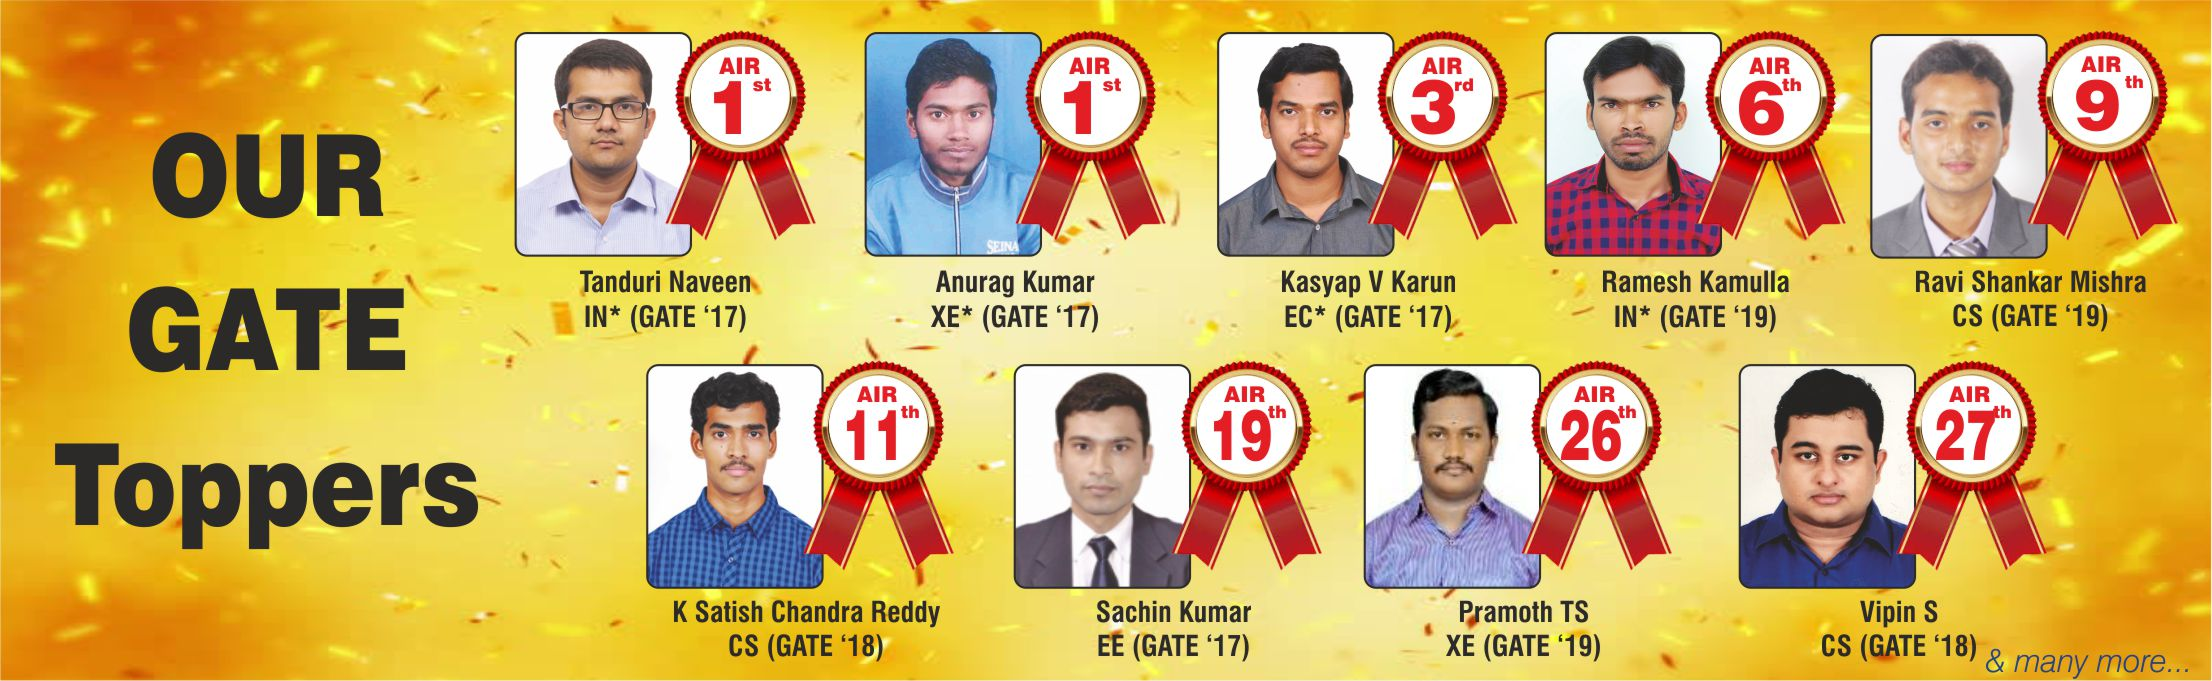 GATE2017 Toppers